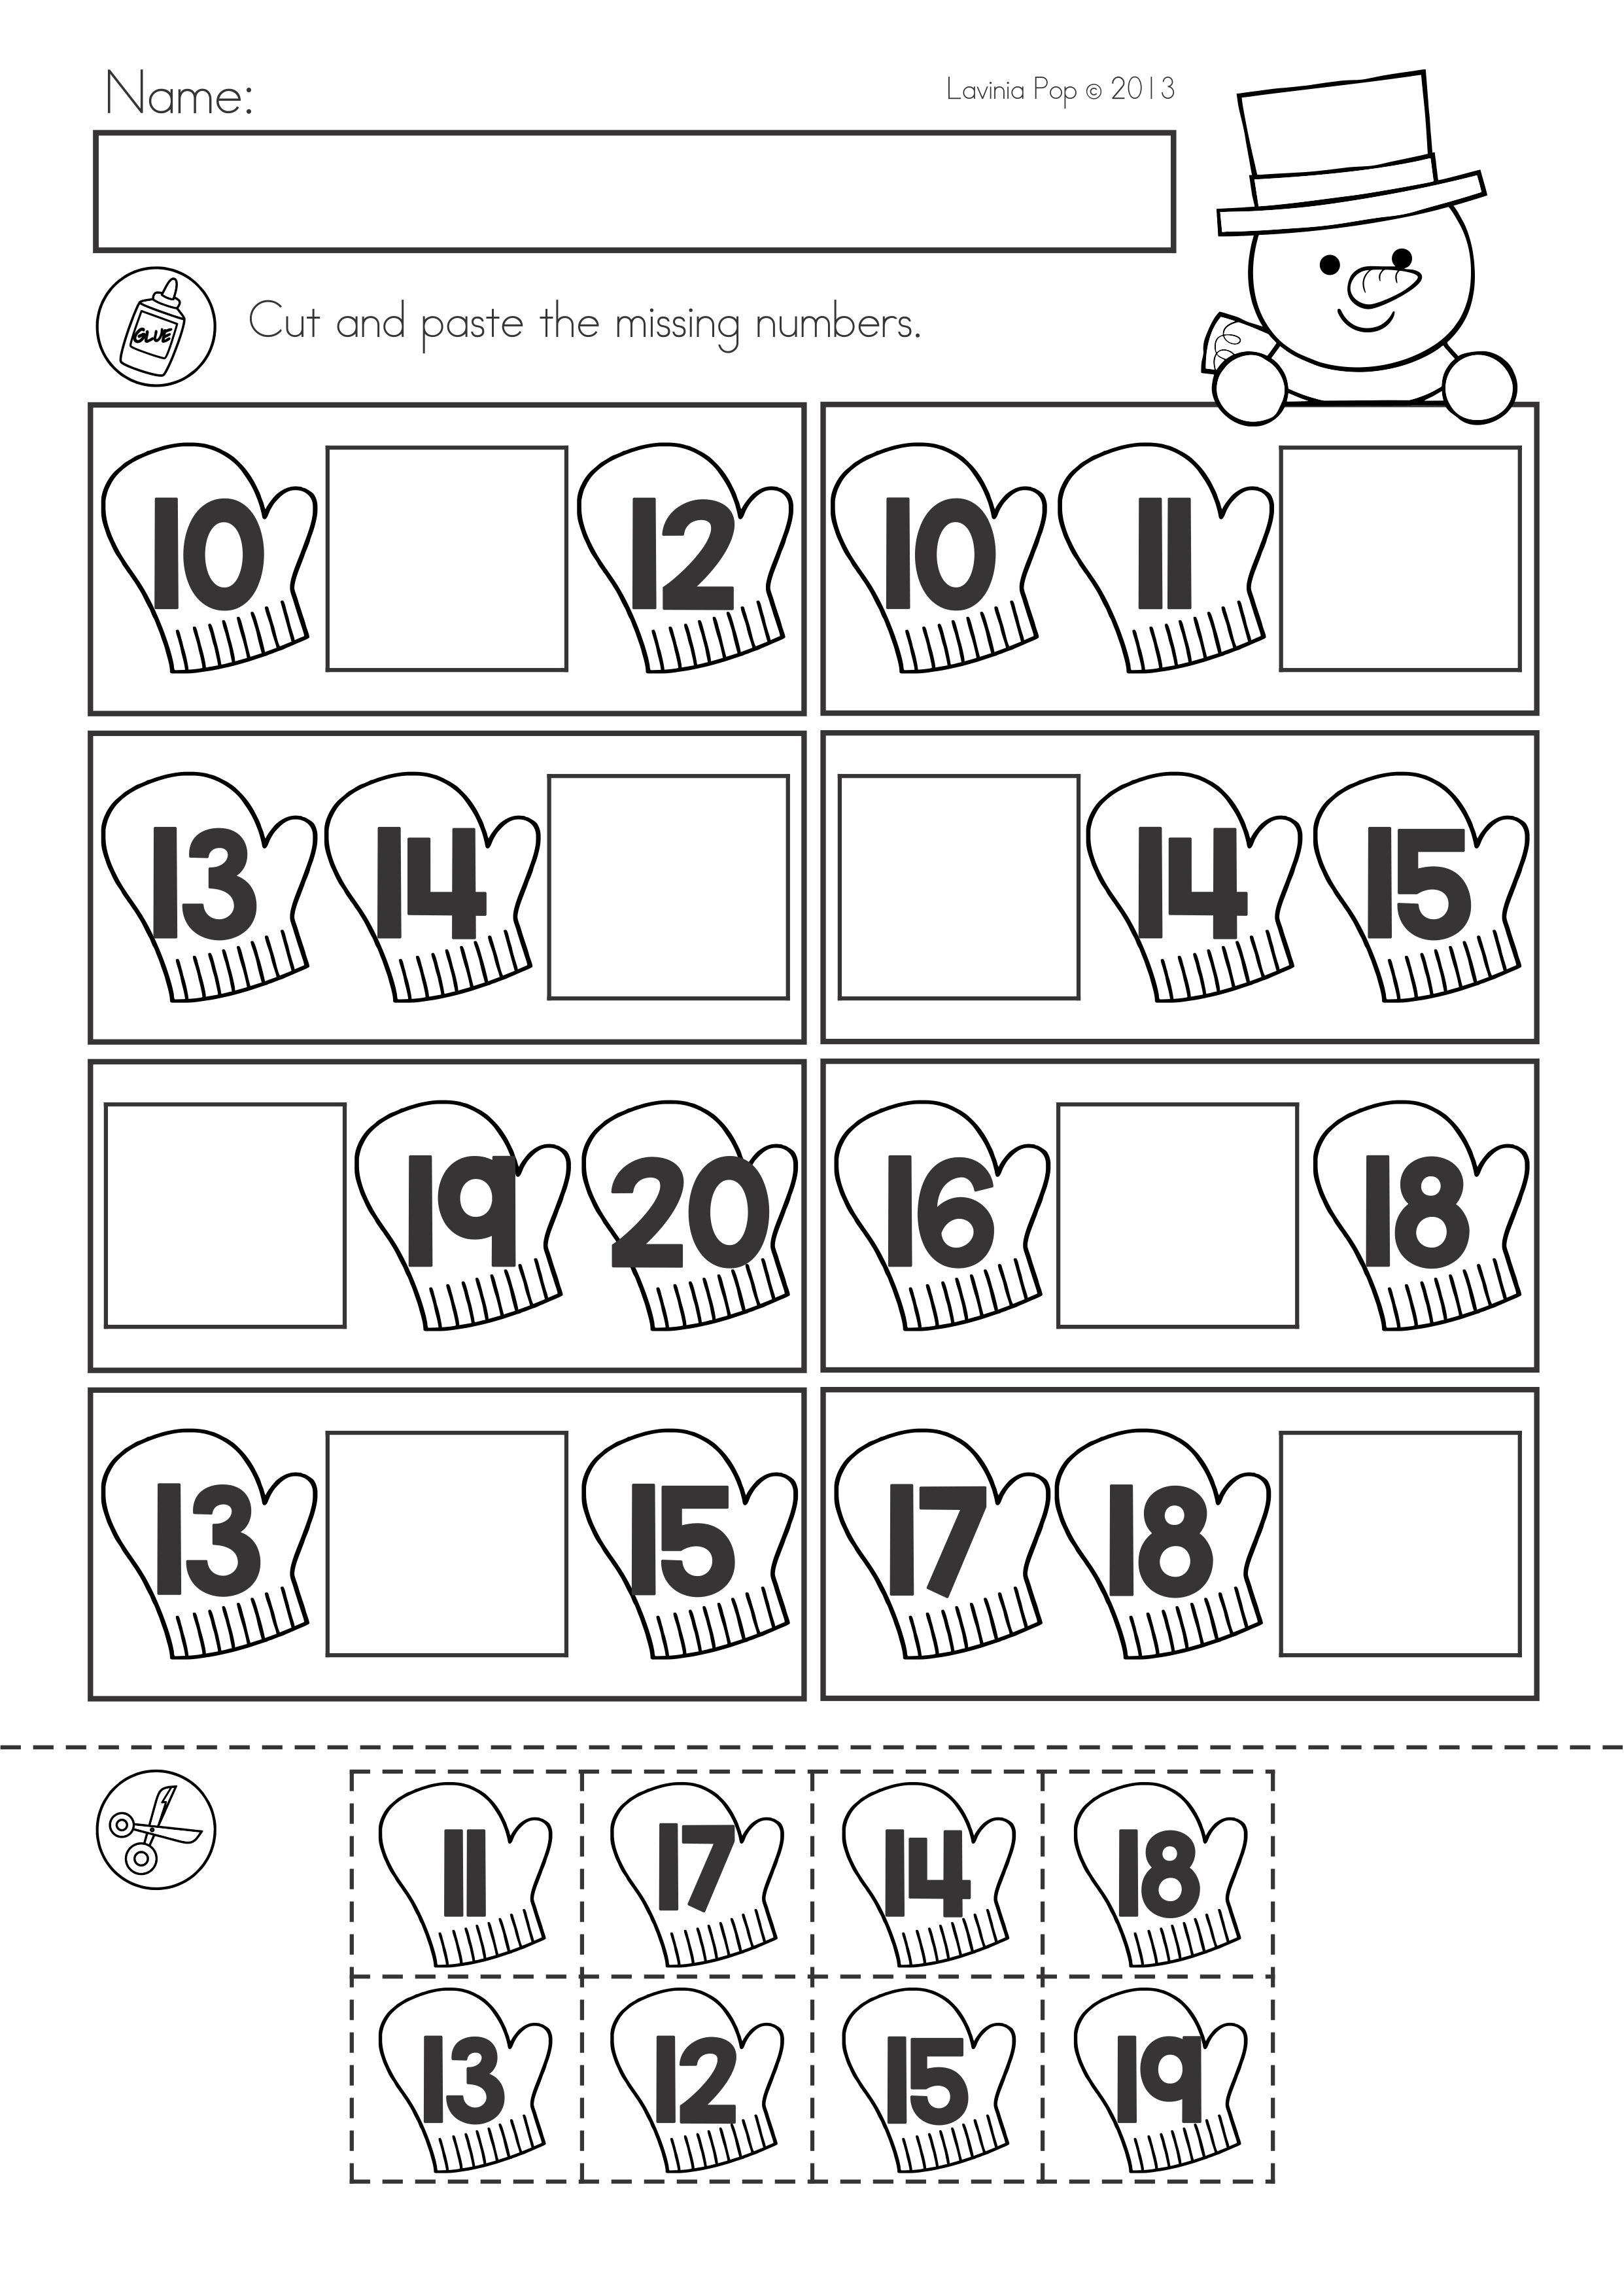 7 Best Cut And Paste Worksheets Images On Best Worksheets